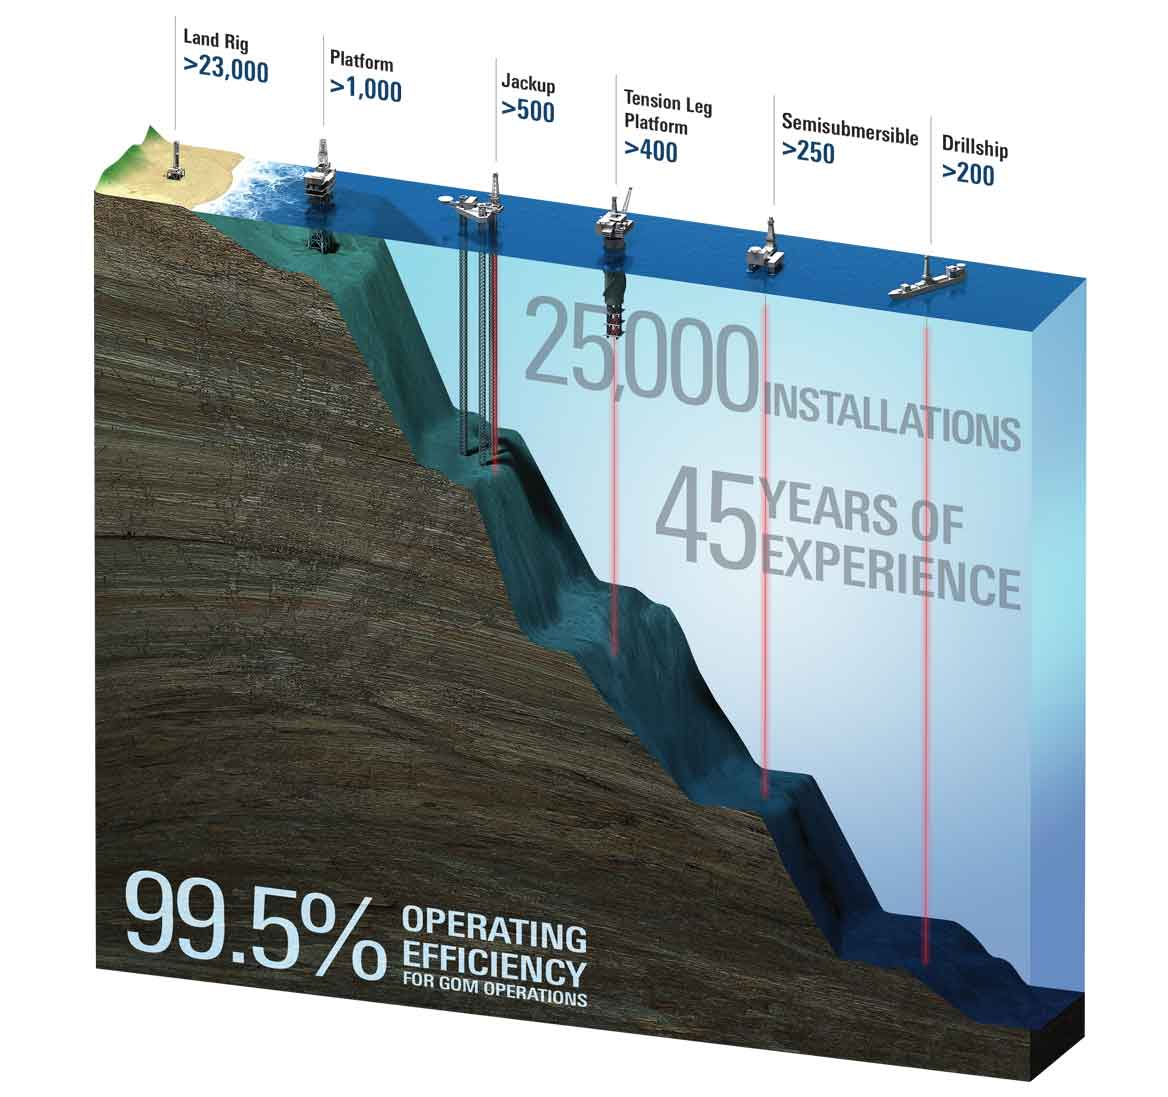 Liner hanger infographic showing 25,000 installations, 45 years of experience, and 99.5% operating efficiency